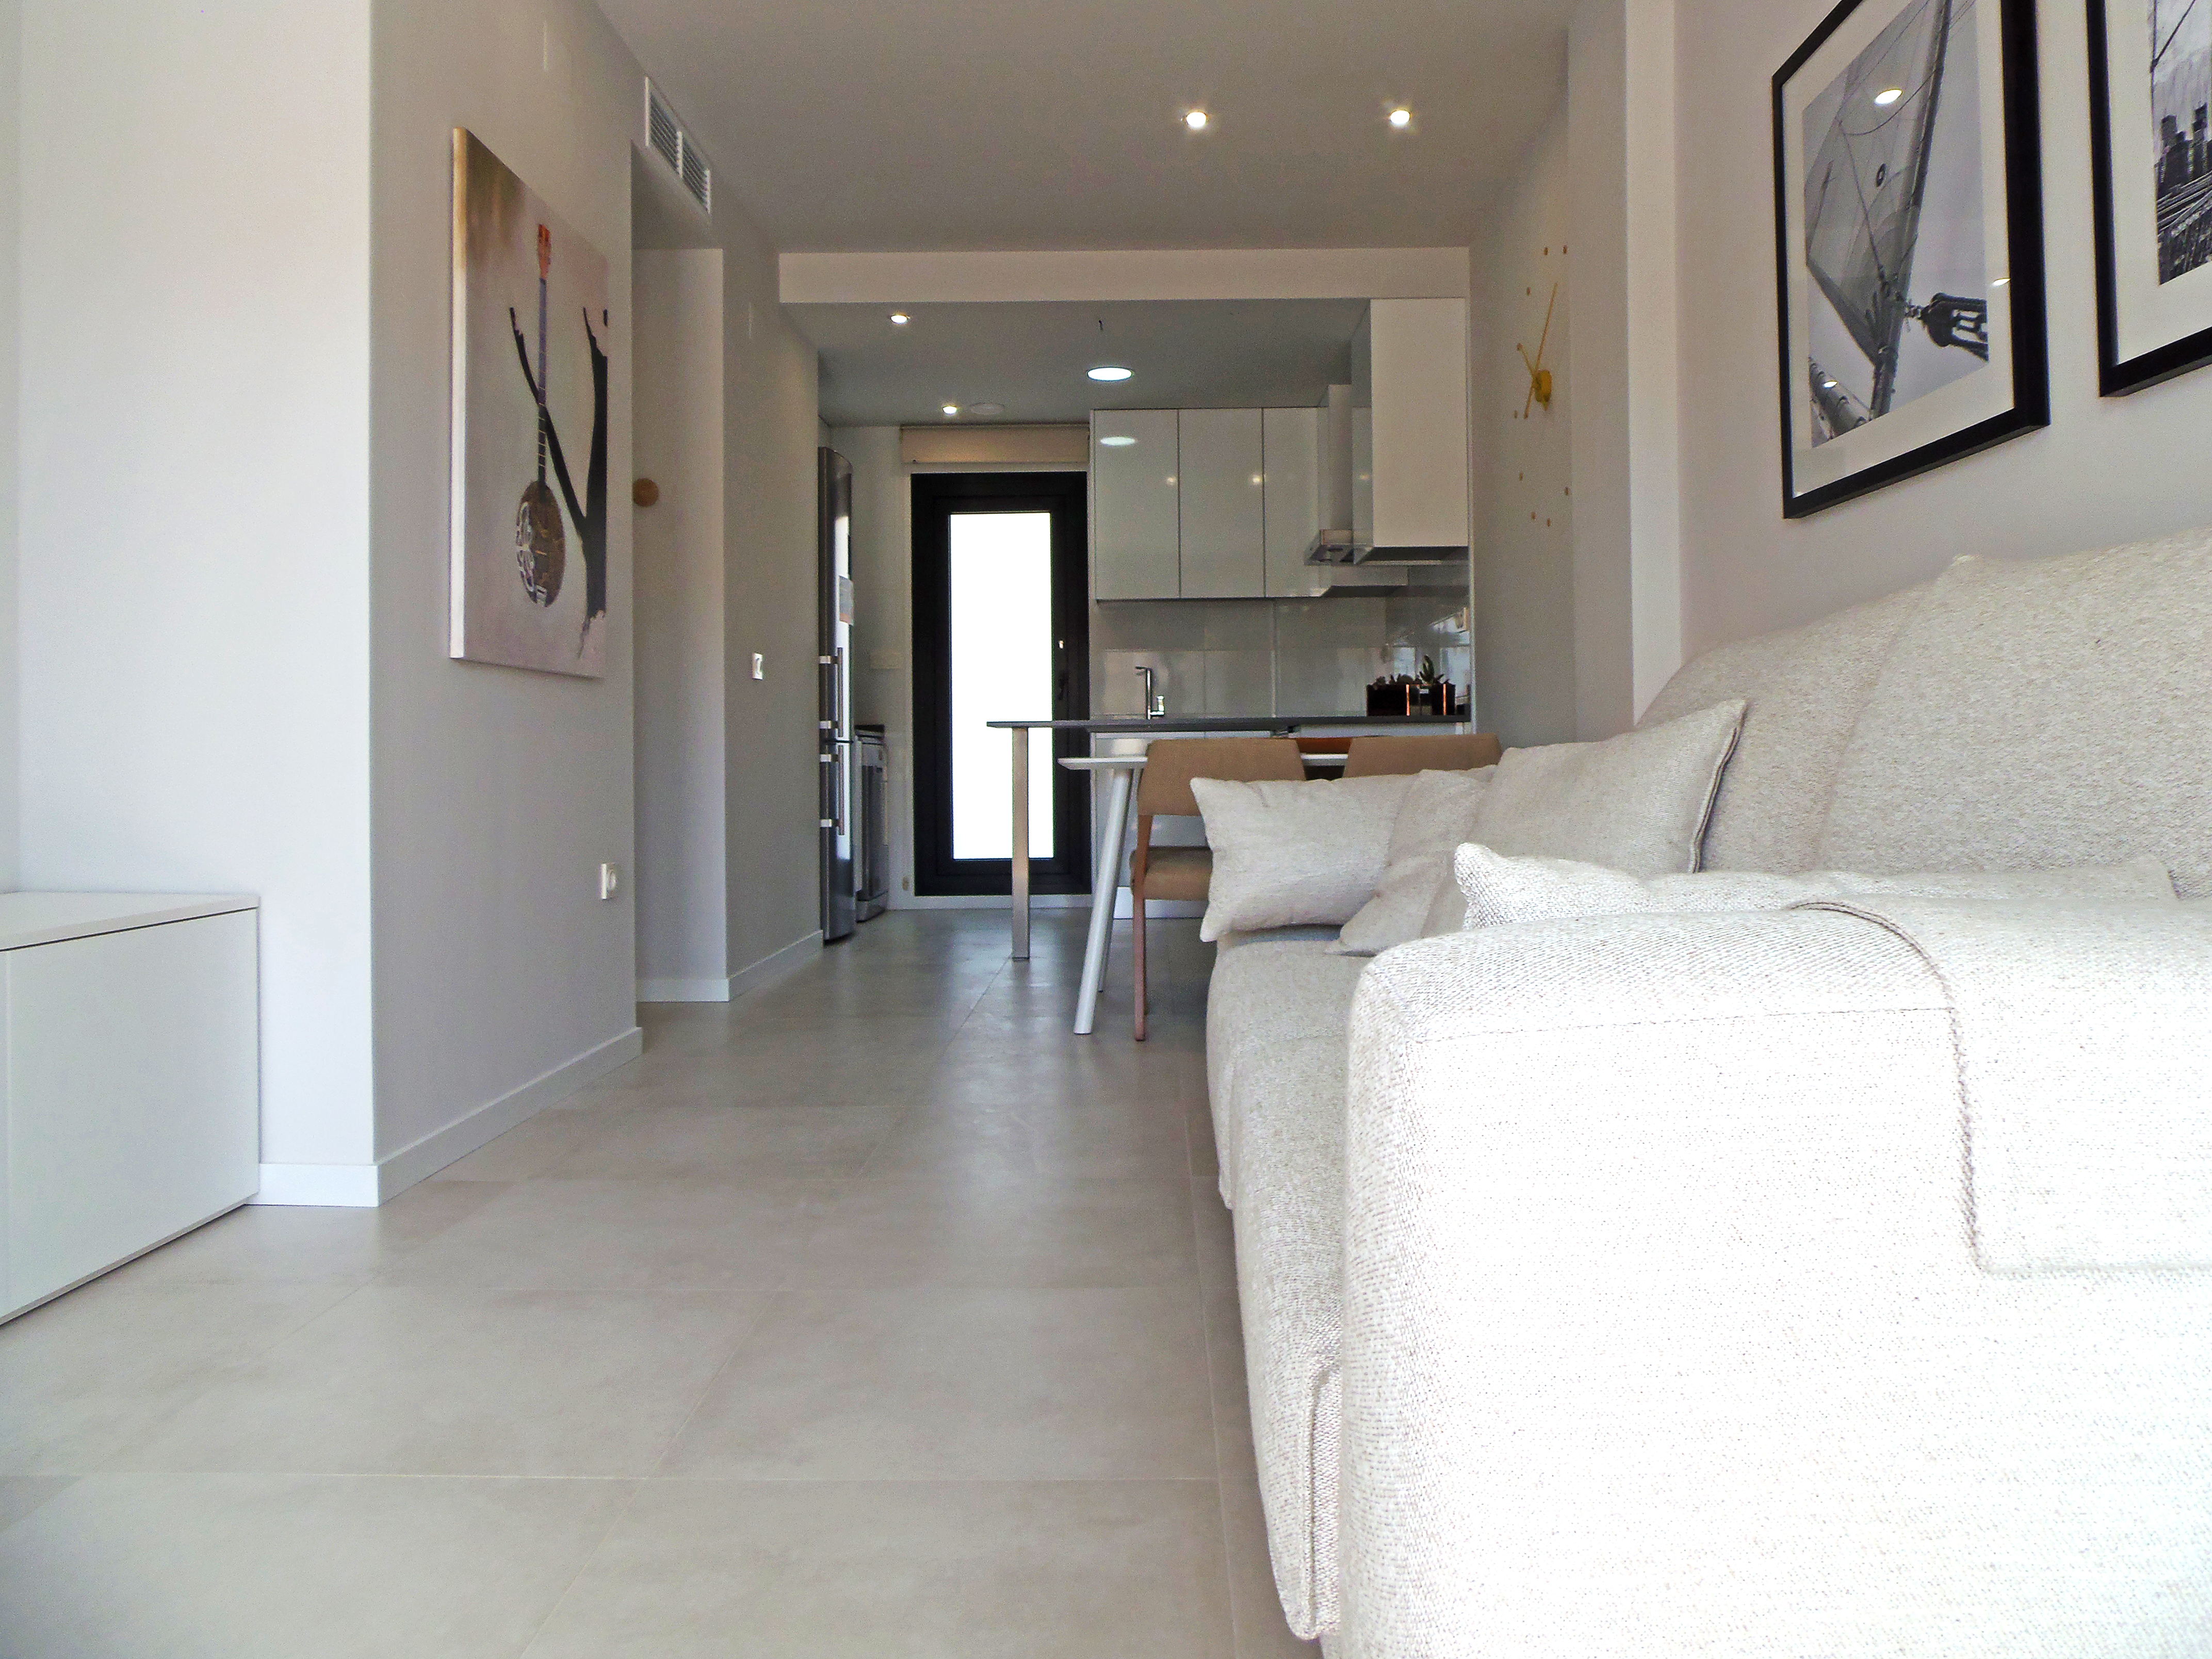 3 bedroom apartment For Sale in Mil Palmeras - photograph 11